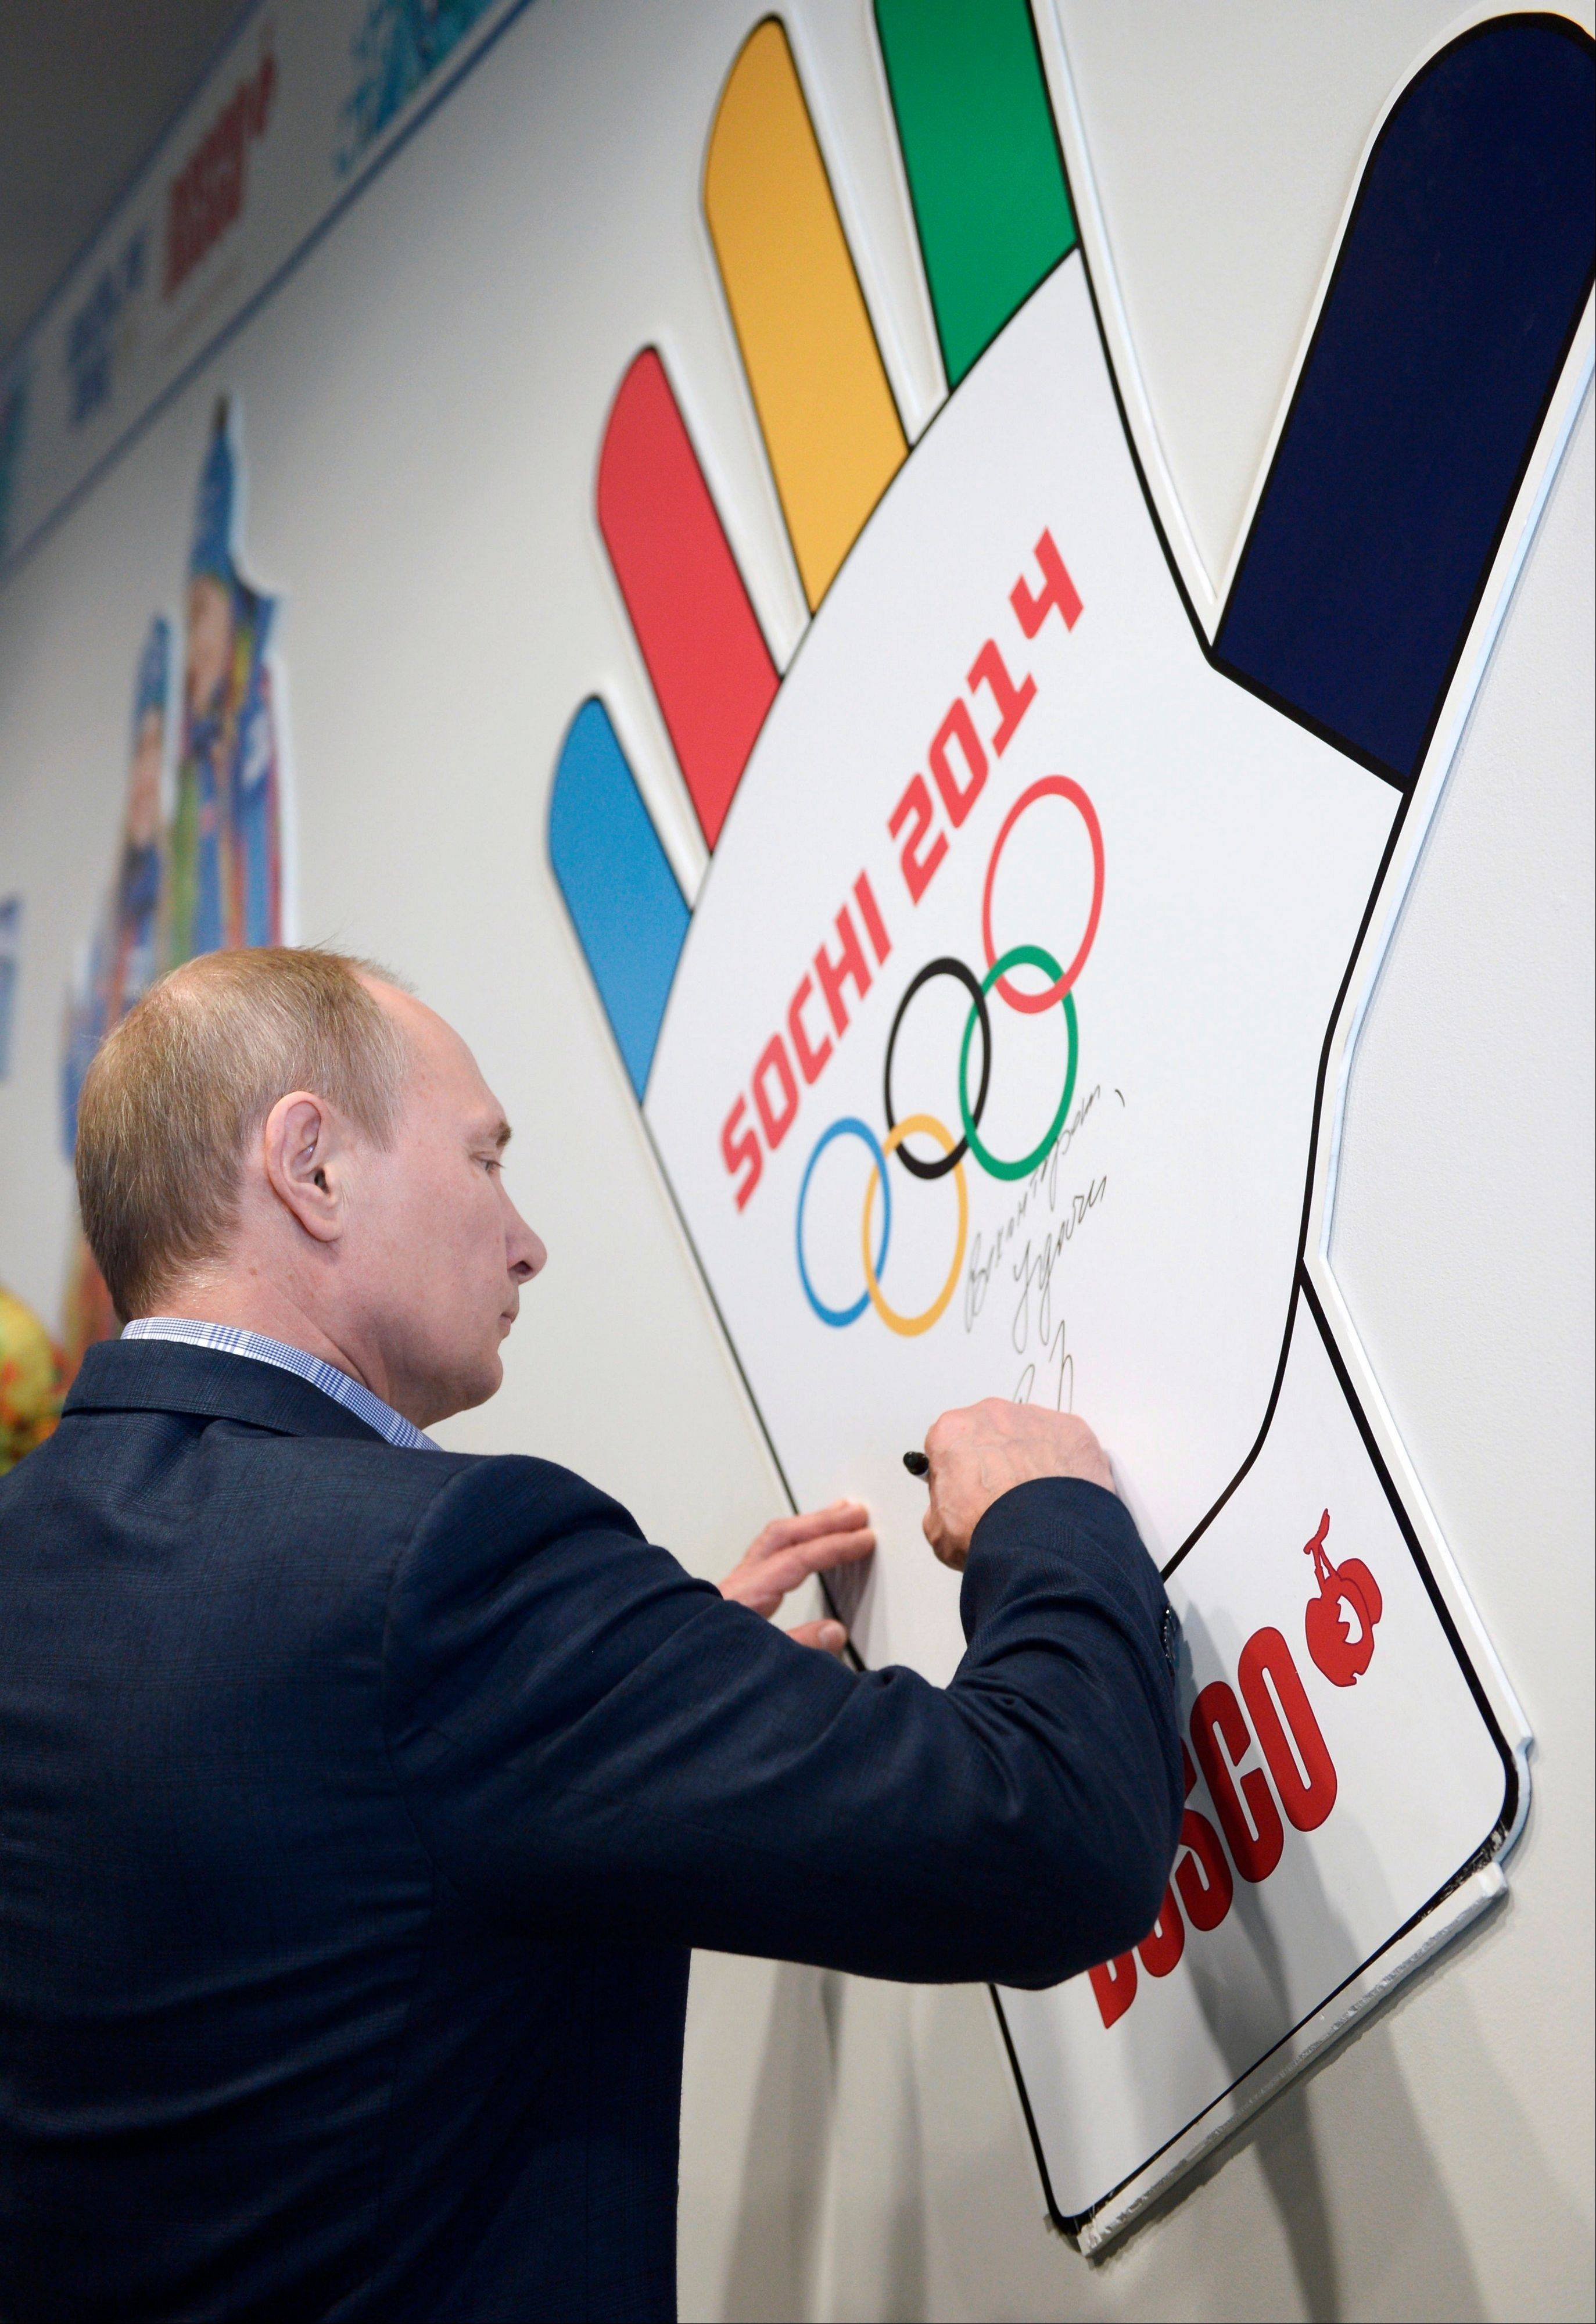 Russian President Vladimir Putin signs his name during a visit to the training center for volunteers for the Winter Olympics at the Black Sea resort of Sochi, southern Russia, Saturday, Jan. 4. Putin has rescinded a blanket ban on demonstrations in Sochi in and around the Winter Olympics and Paralympics.